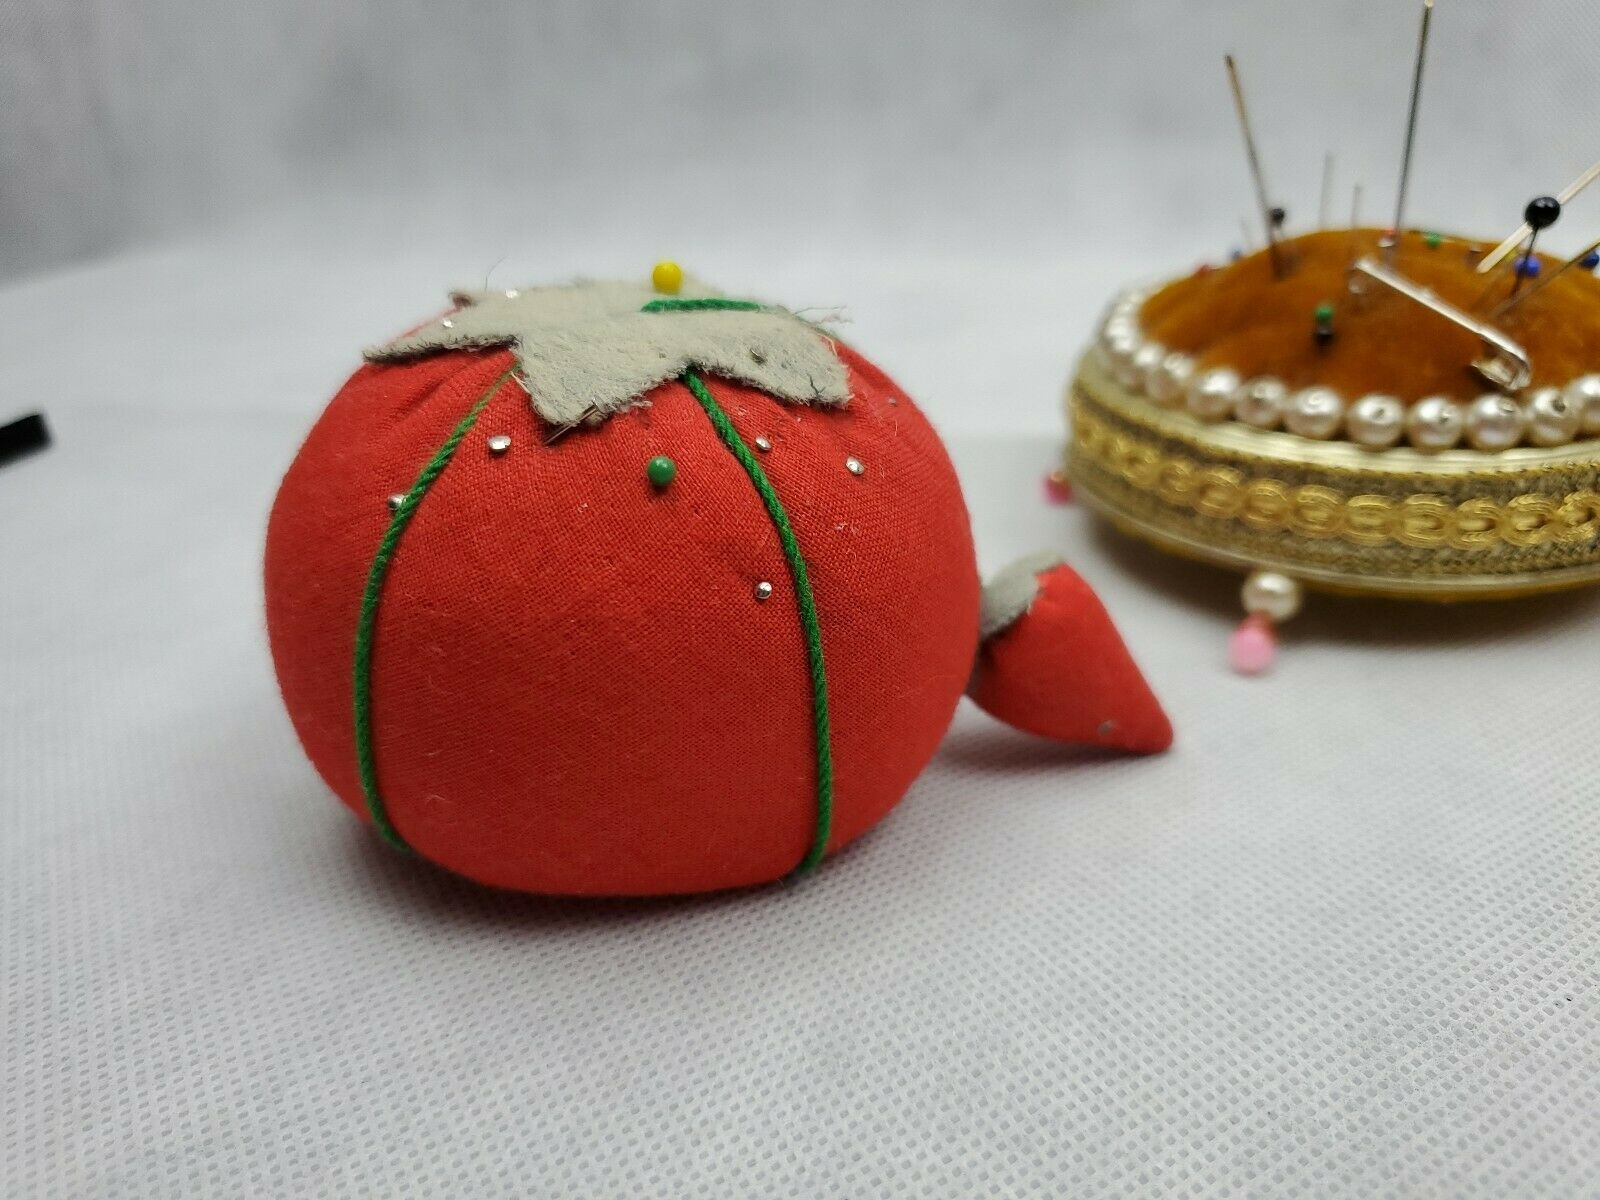 Huge Lot of 9 Vintage Pin Cushions Tomatoes apple mushroom metal Needle Sewing image 4